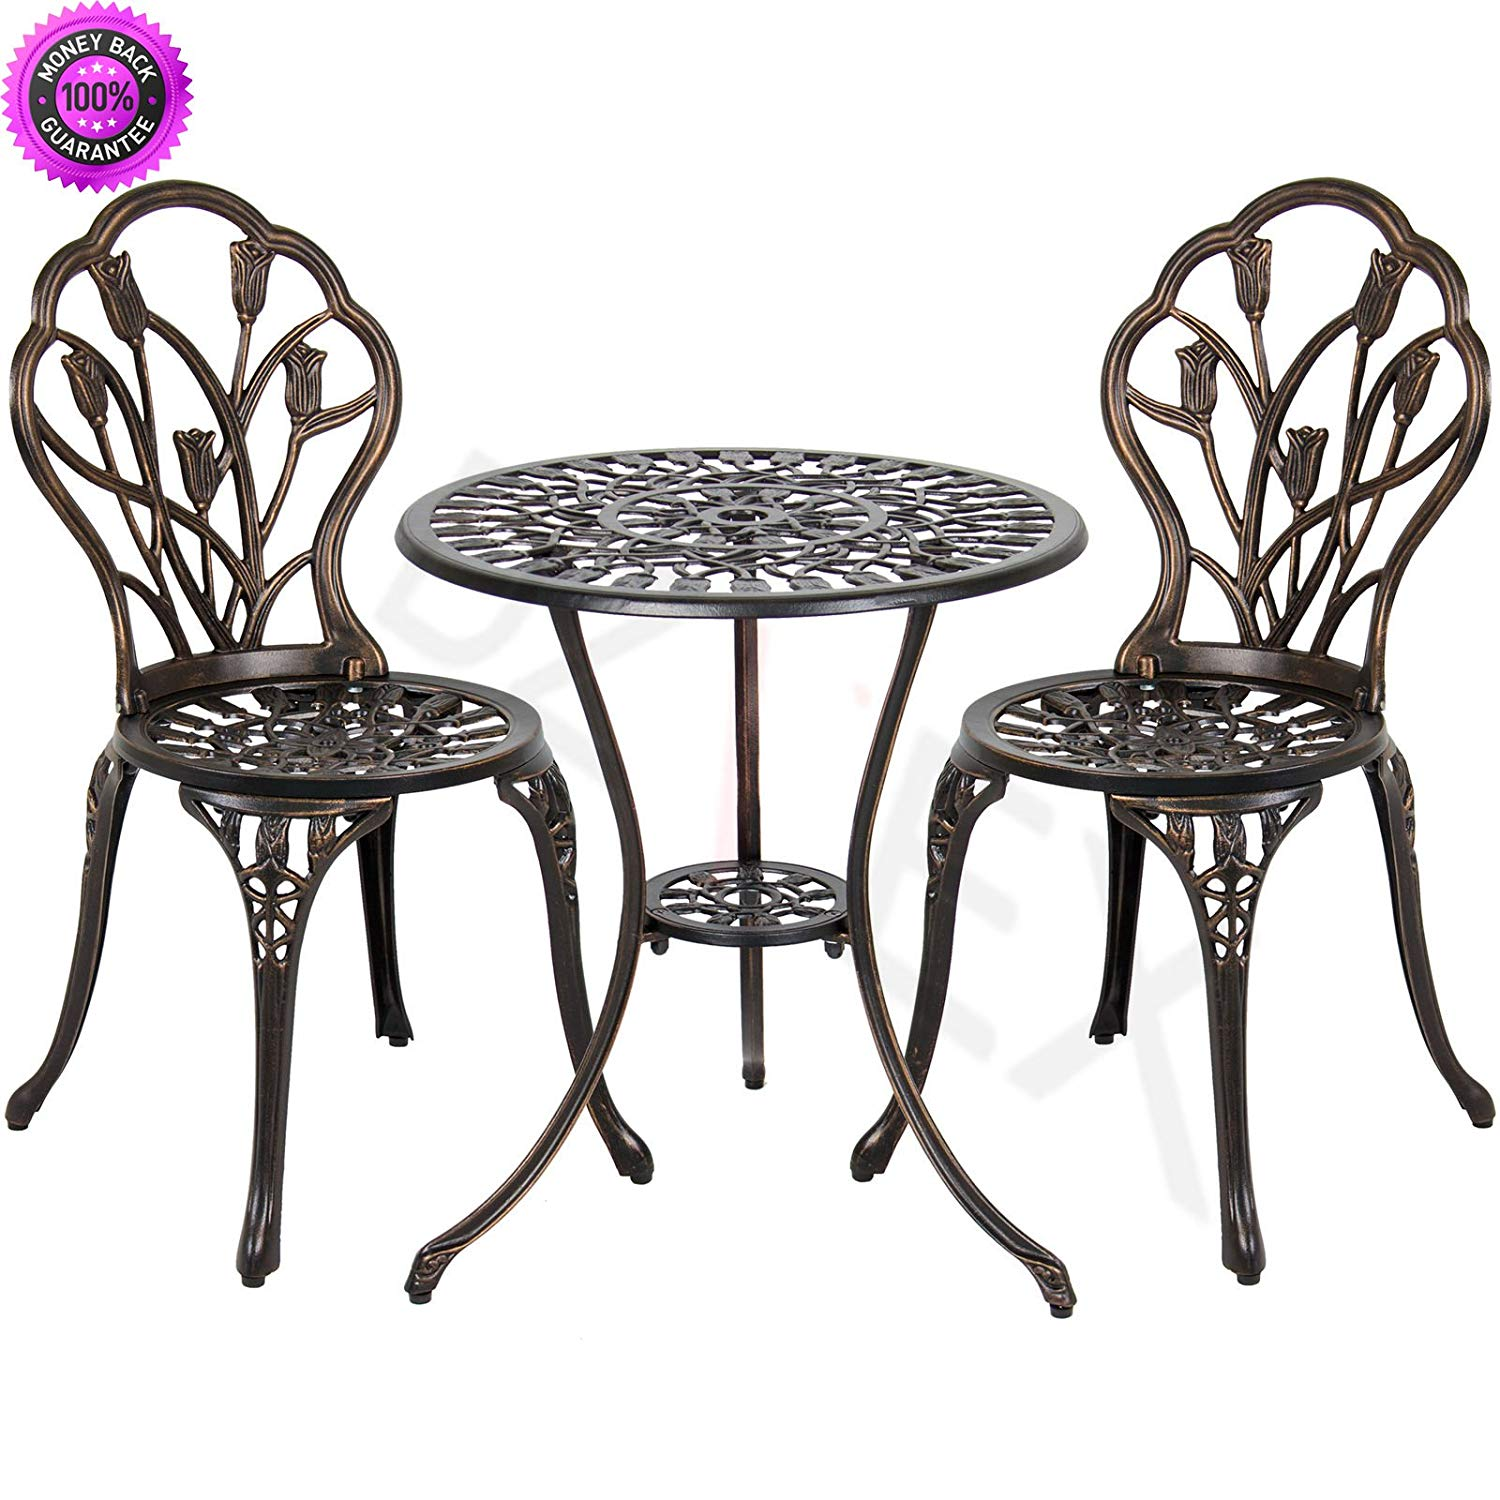 DzVeX Cast Aluminum Patio Bistro Furniture Set in Antique Copper And patio  furniture home depot patio - Cheap Antique Furniture Sale, Find Antique Furniture Sale Deals On